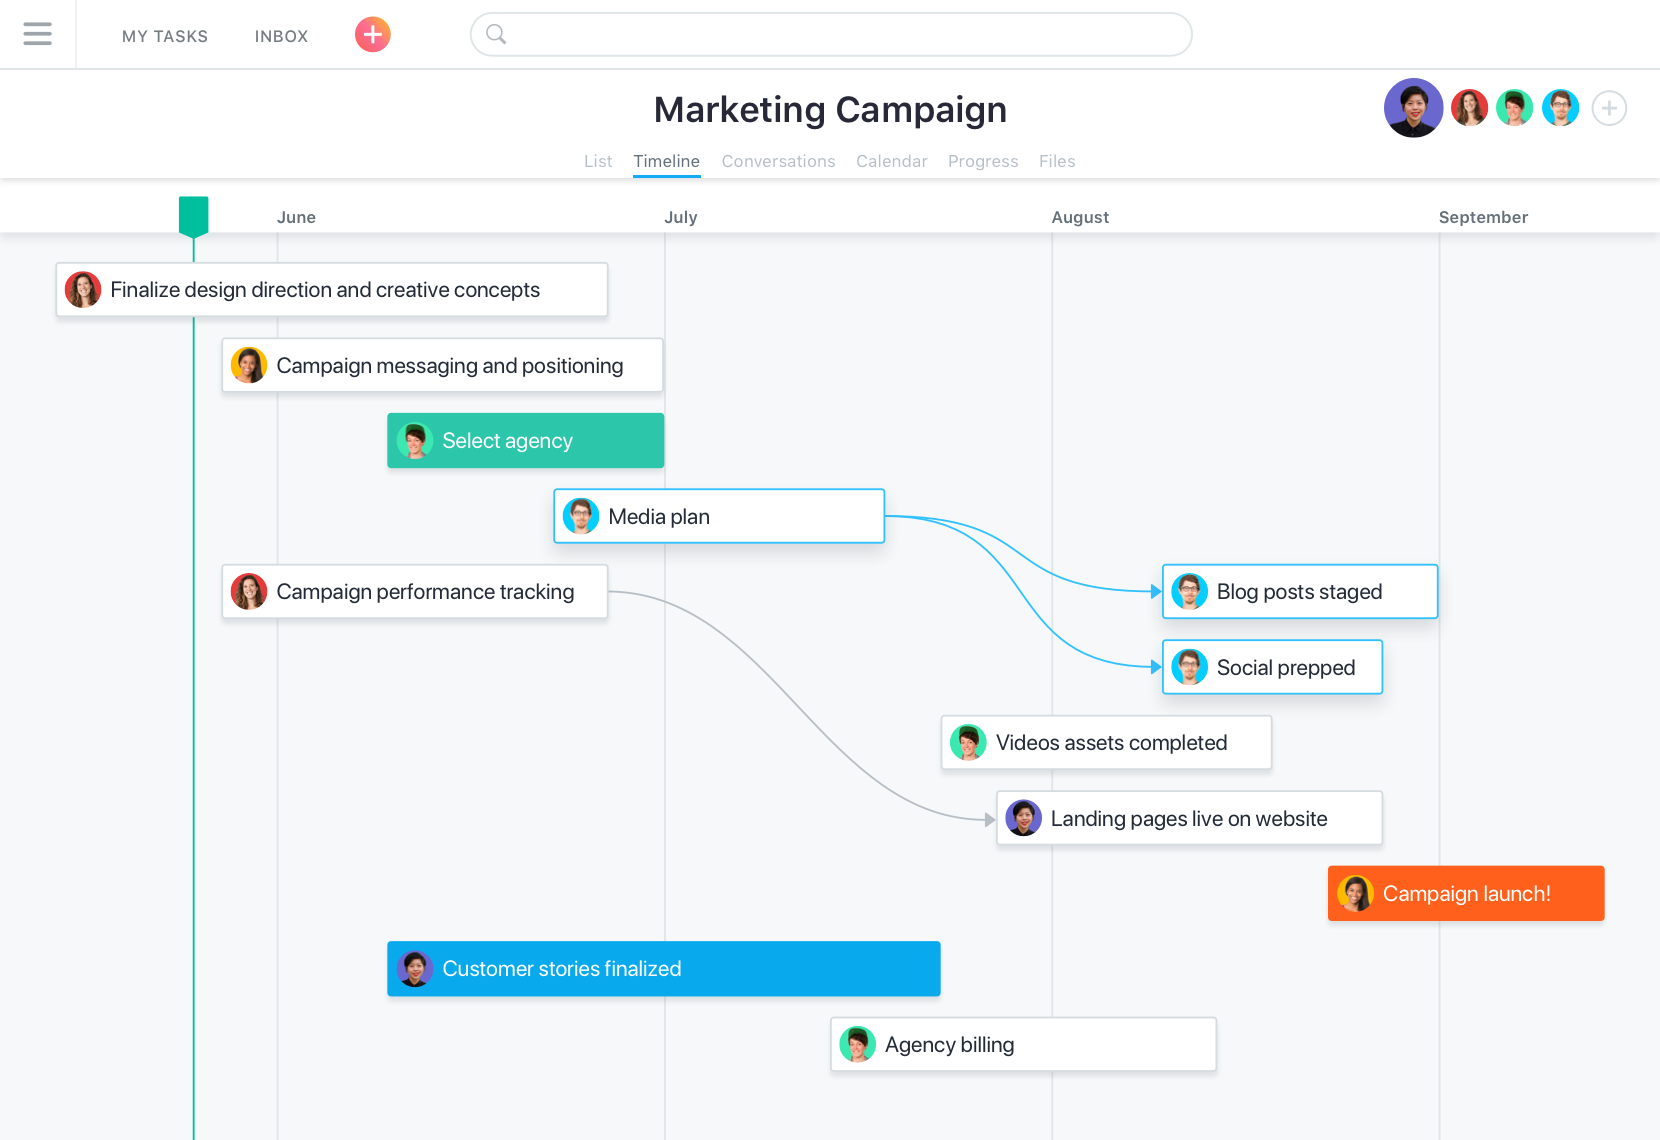 Chronologie de campagne marketing